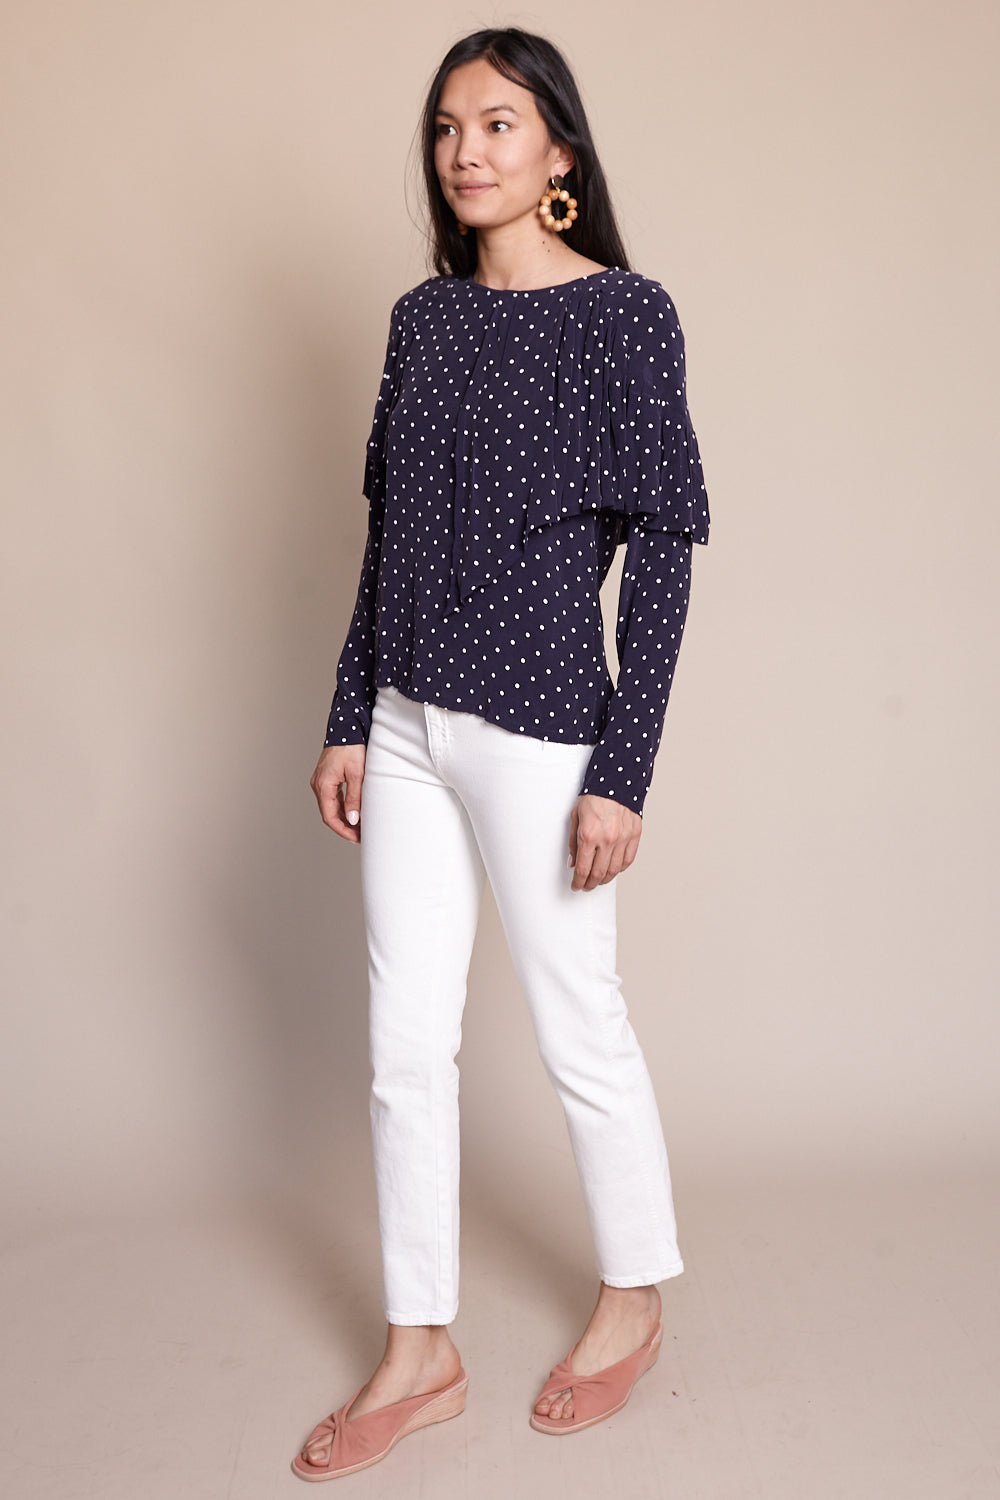 Rooney Blouse in Navy Dot